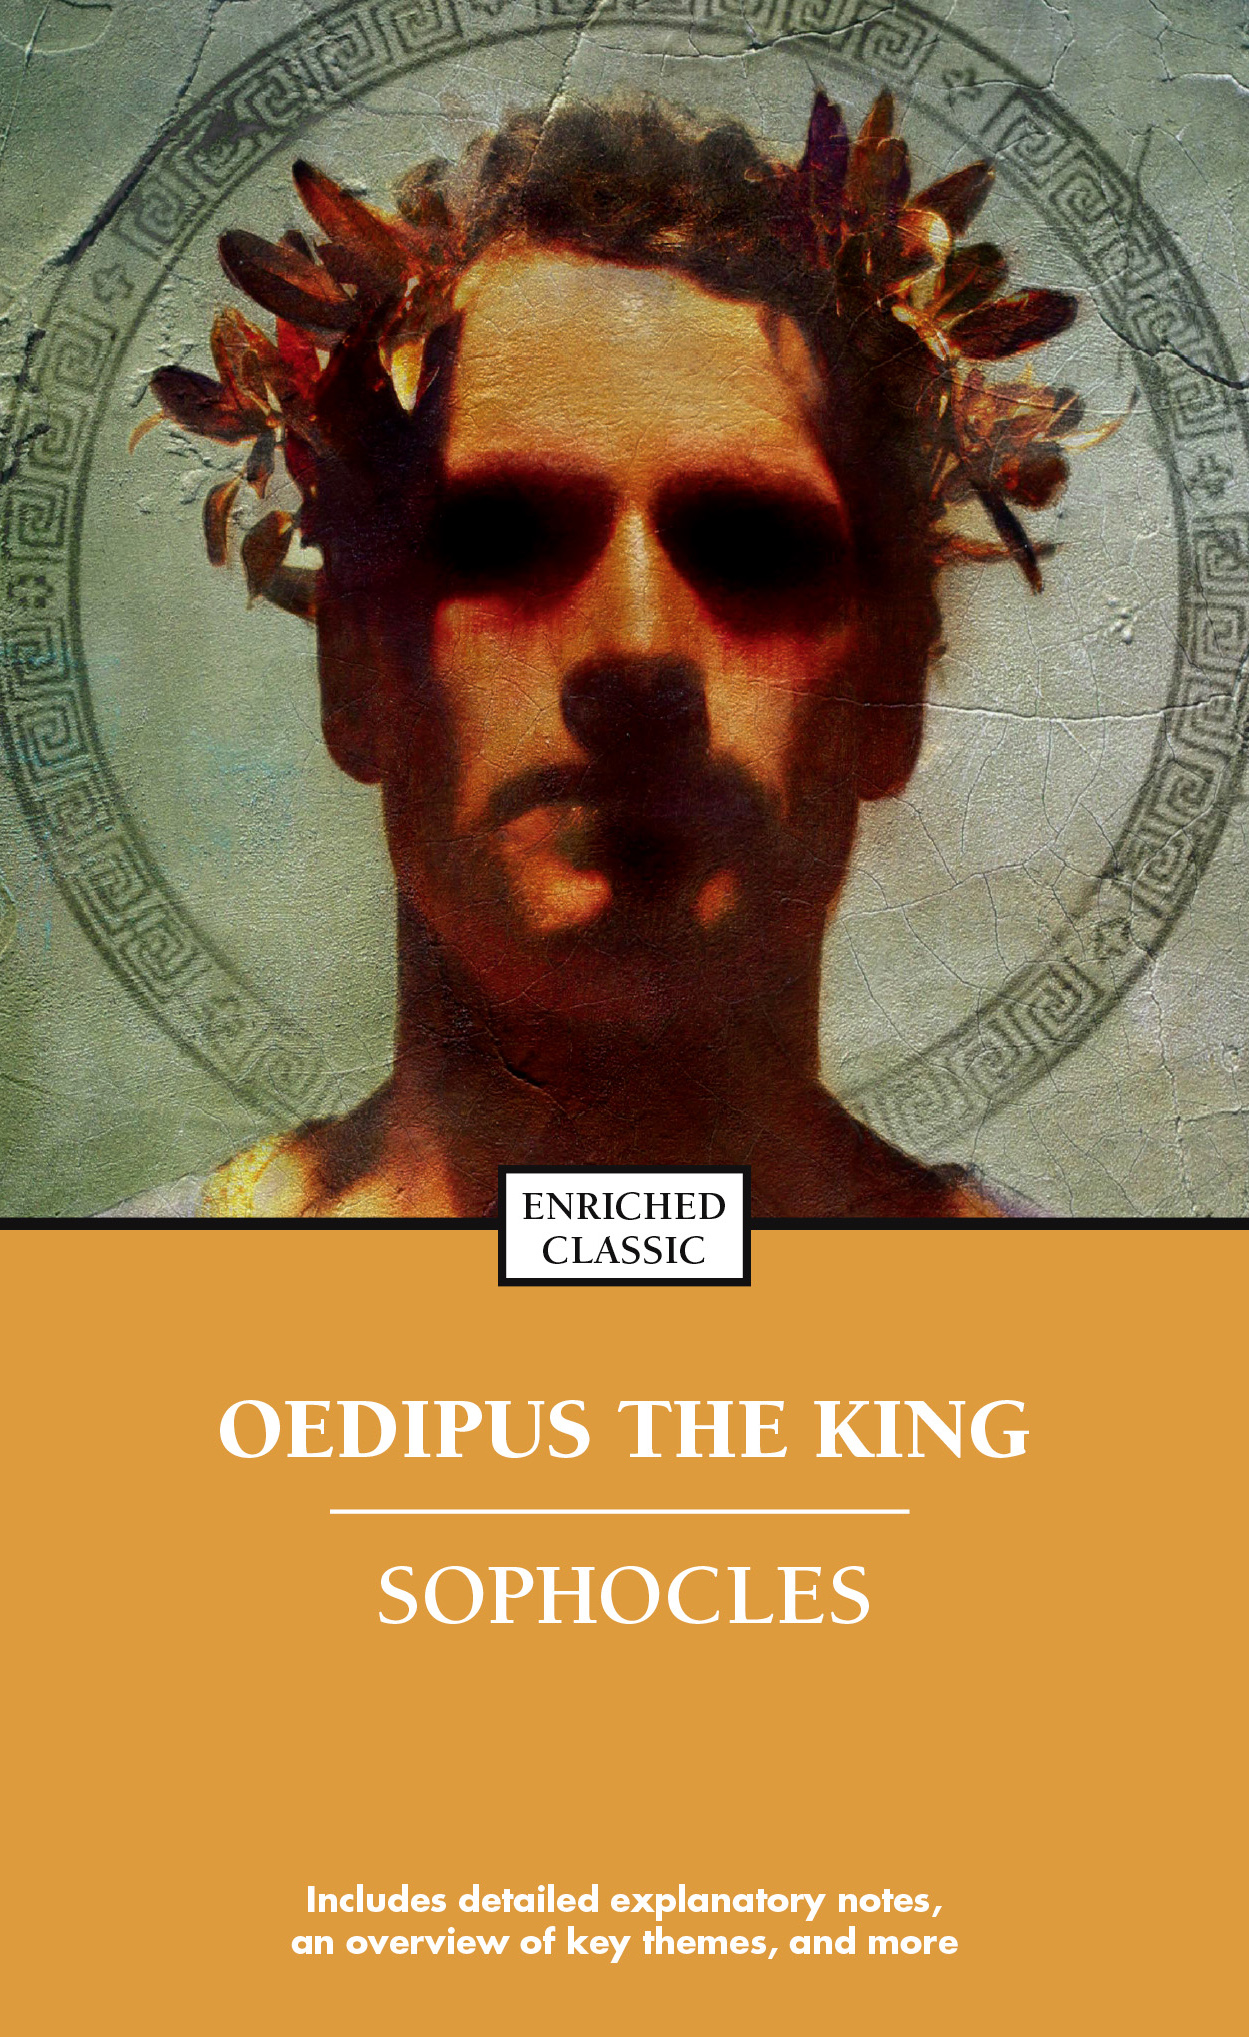 literary analysis of the play oedipus the king by sophocles Literary analysis of oedipus oedipus the king is an ancient greek play has themes that can be closely related to those used today sophocles oedipus the king.